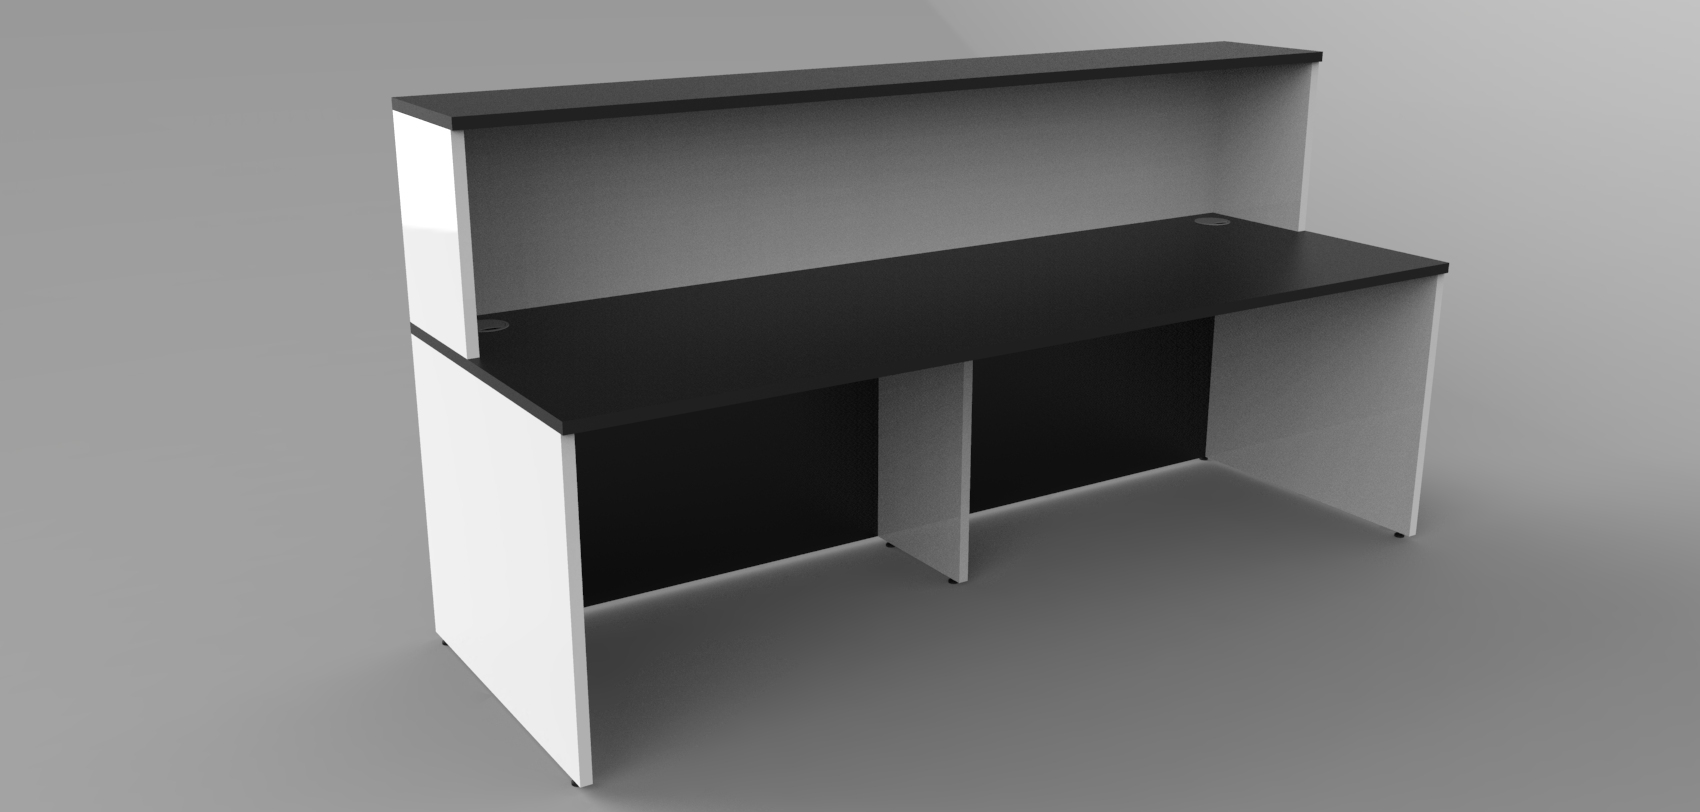 Render- Simple straight reception desk with a recessed modesty panel Black/Whiterear view